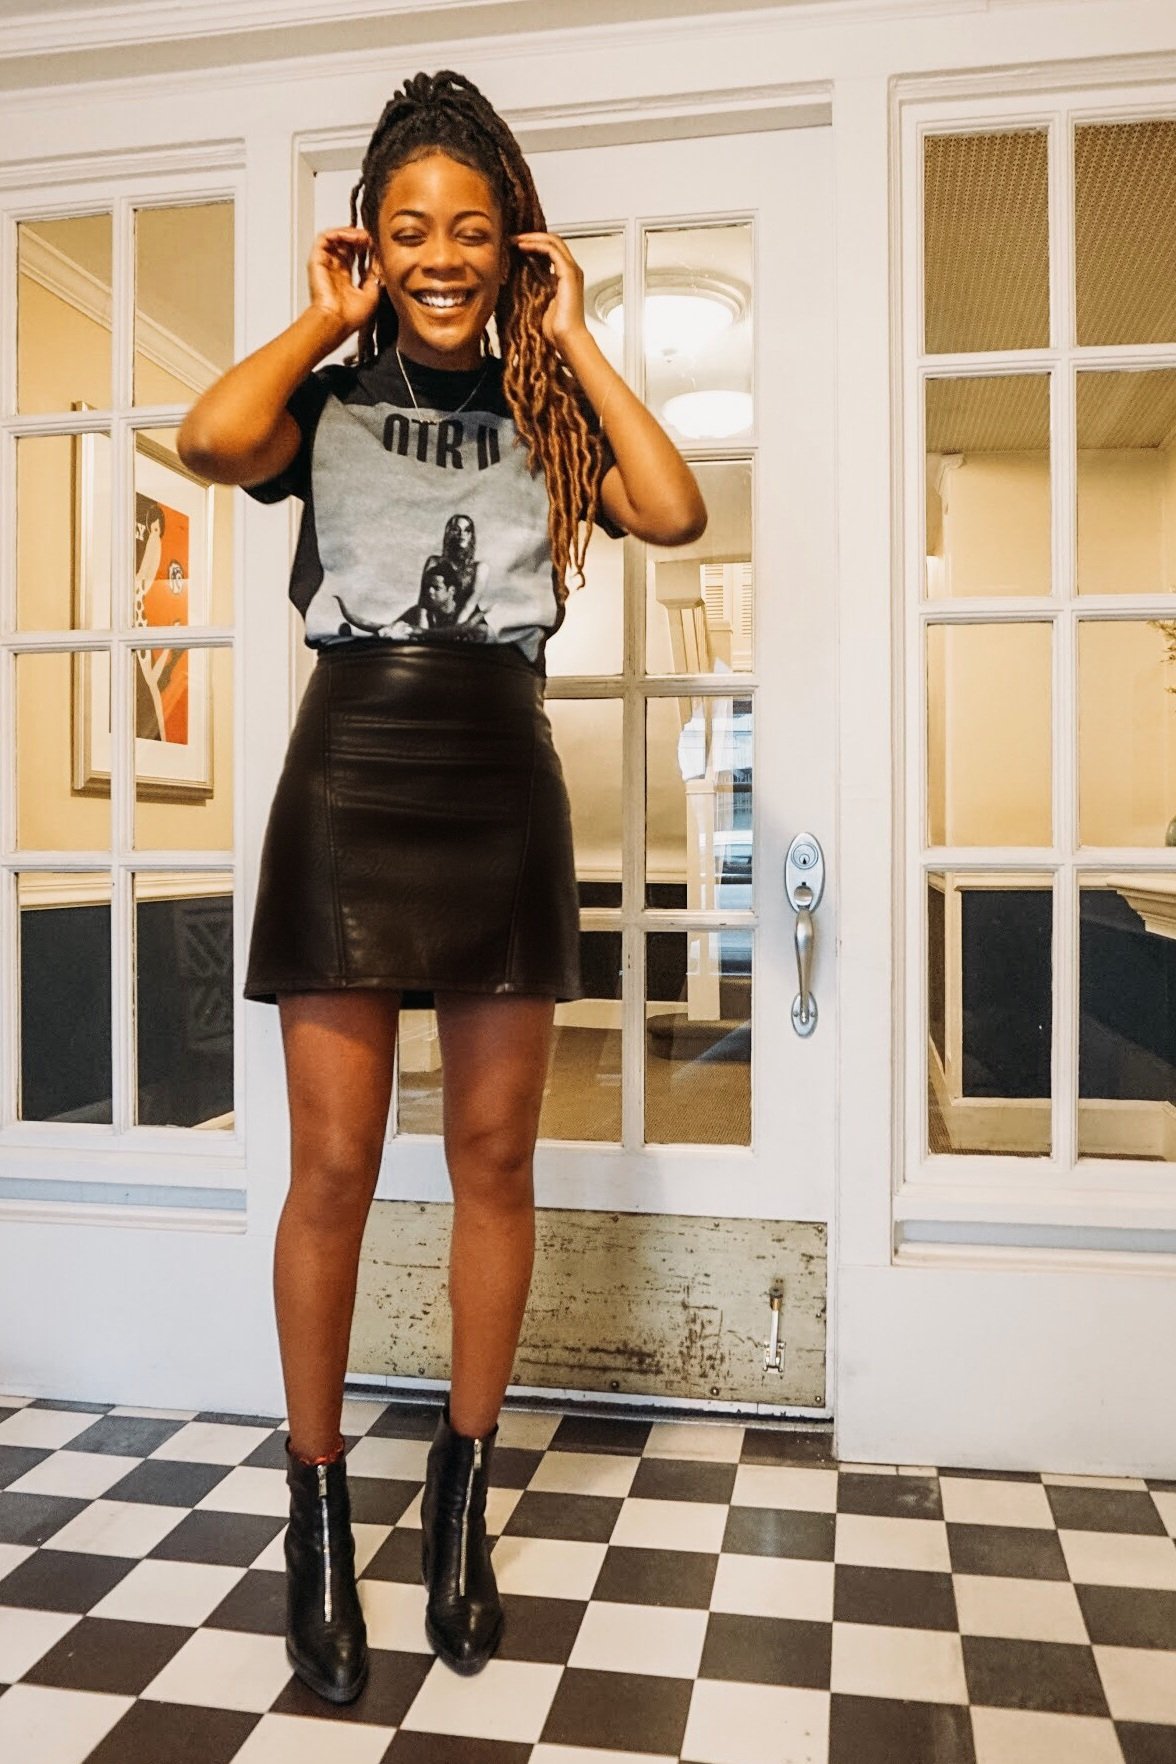 Leather+mini+skirt+and+graphic+tee.jpg